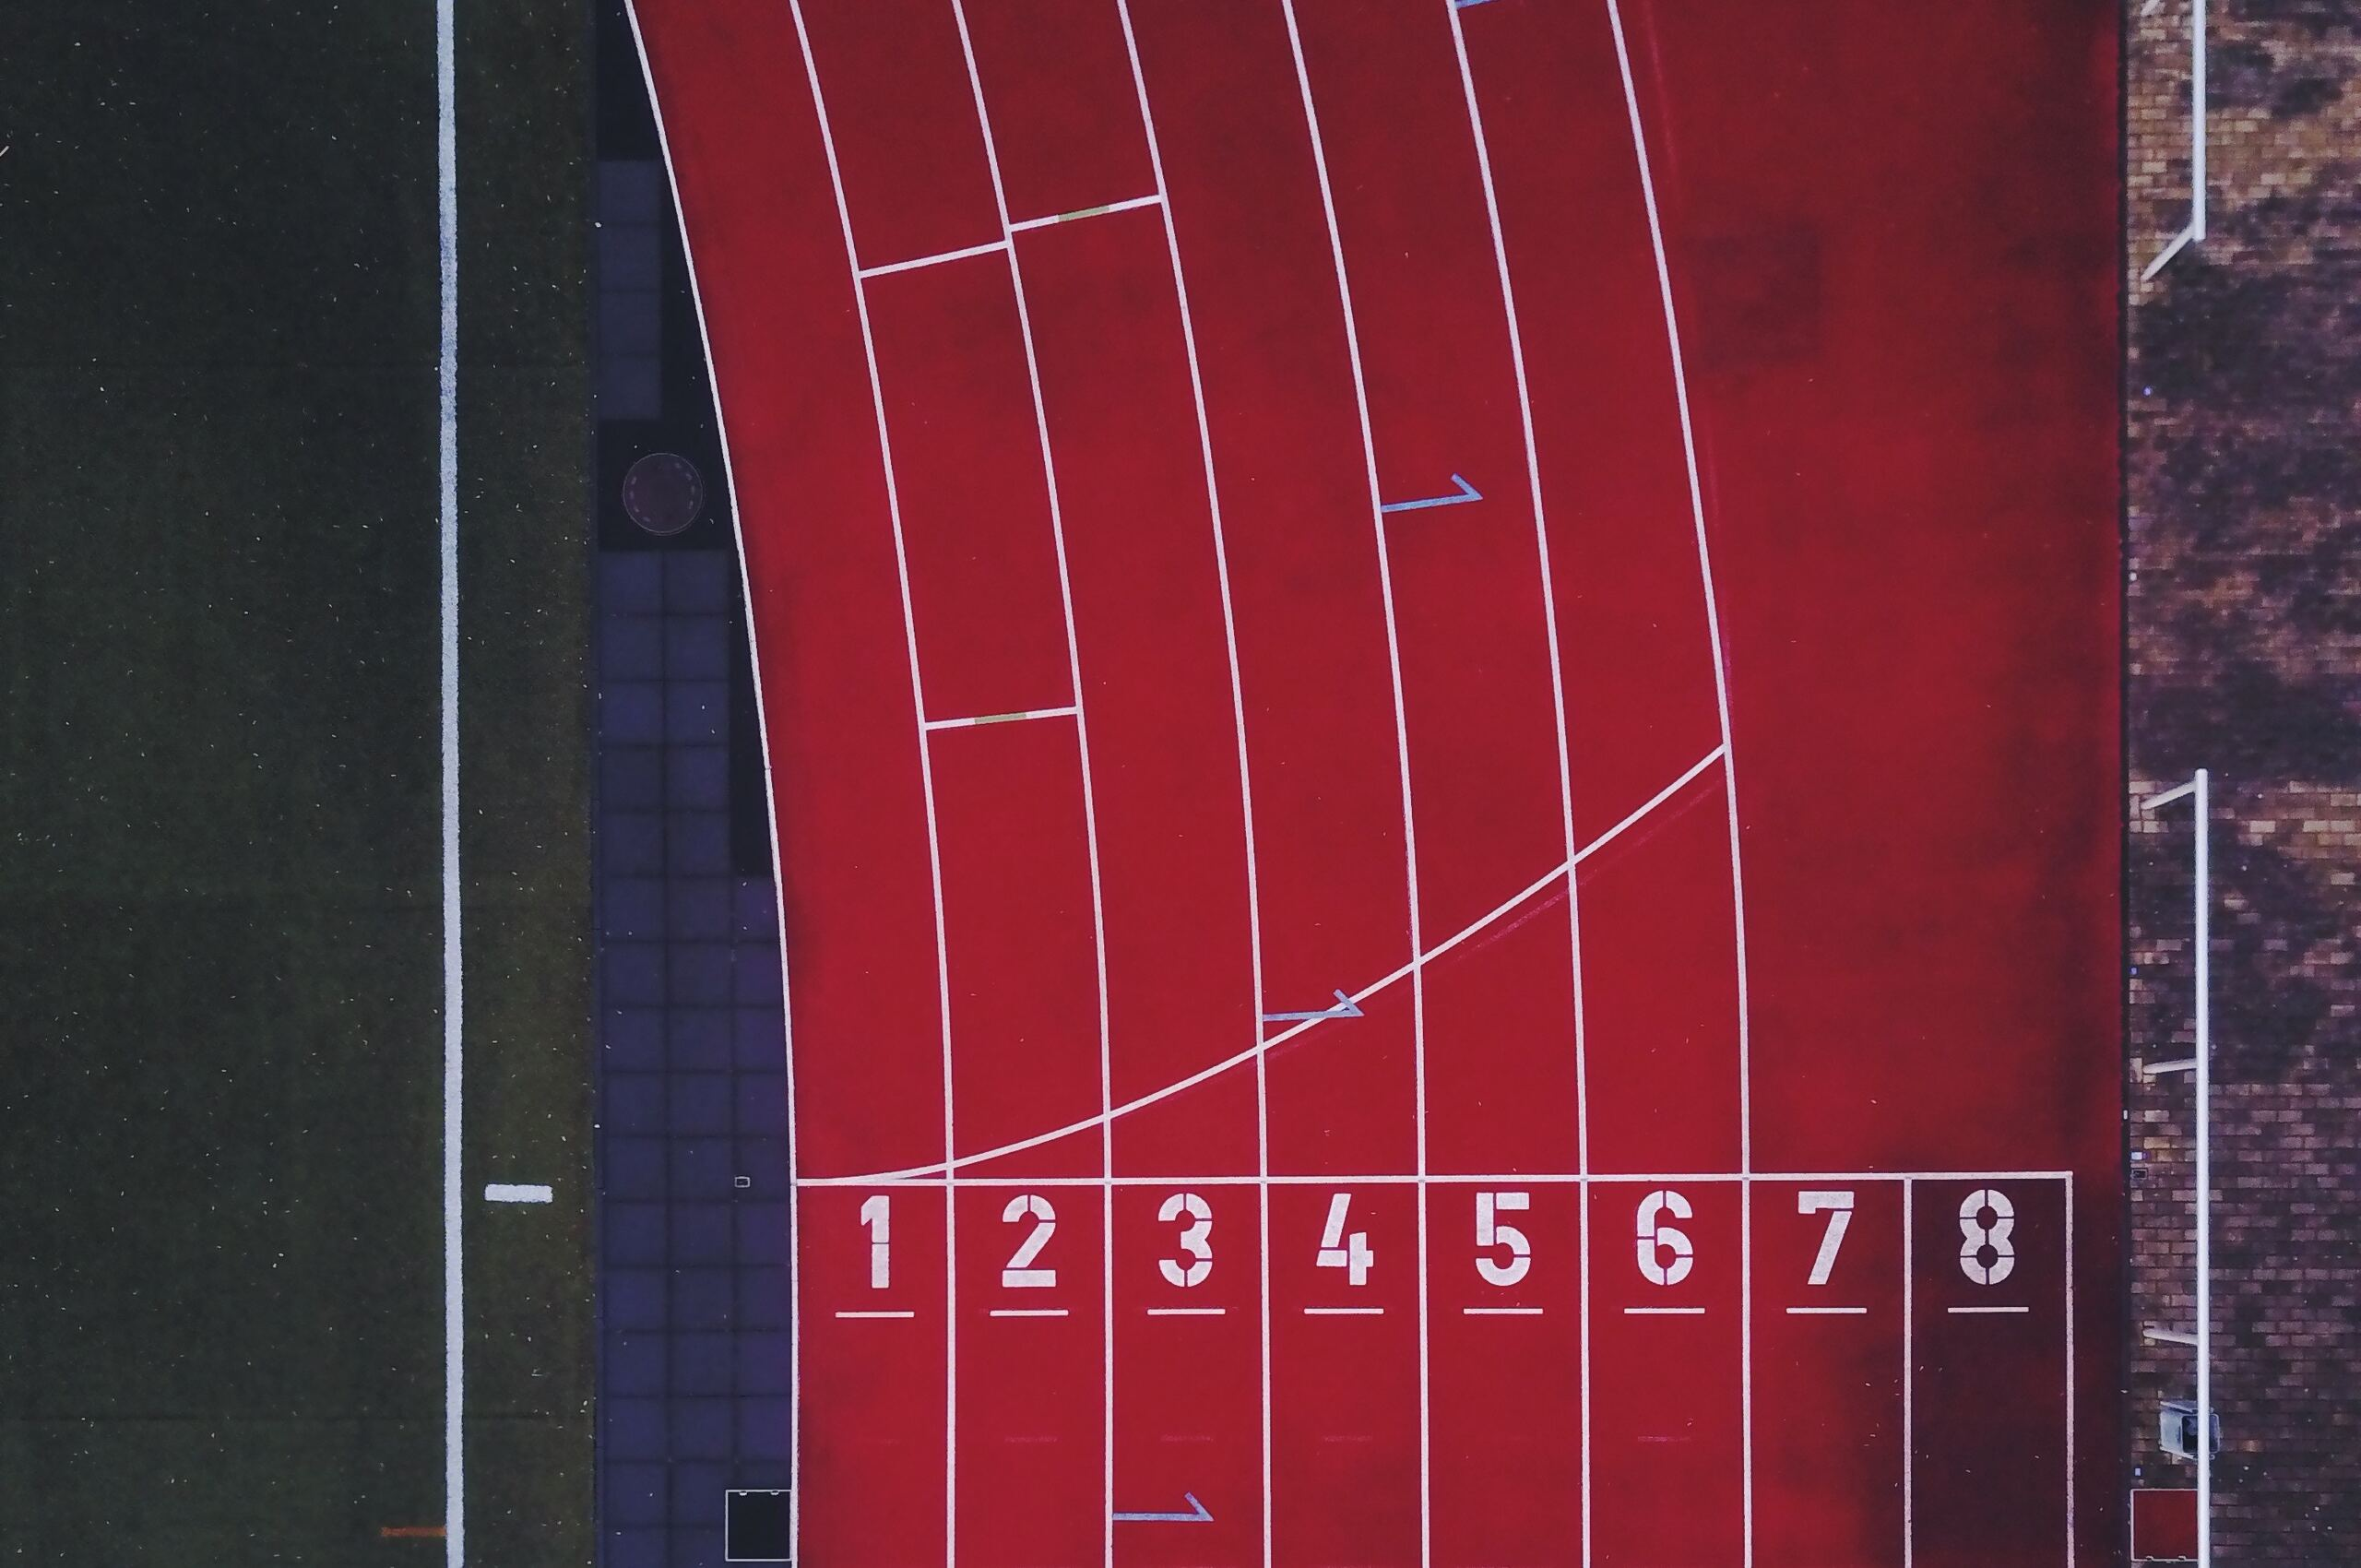 aerial-view-of-racing-track-numbers-76.jpg